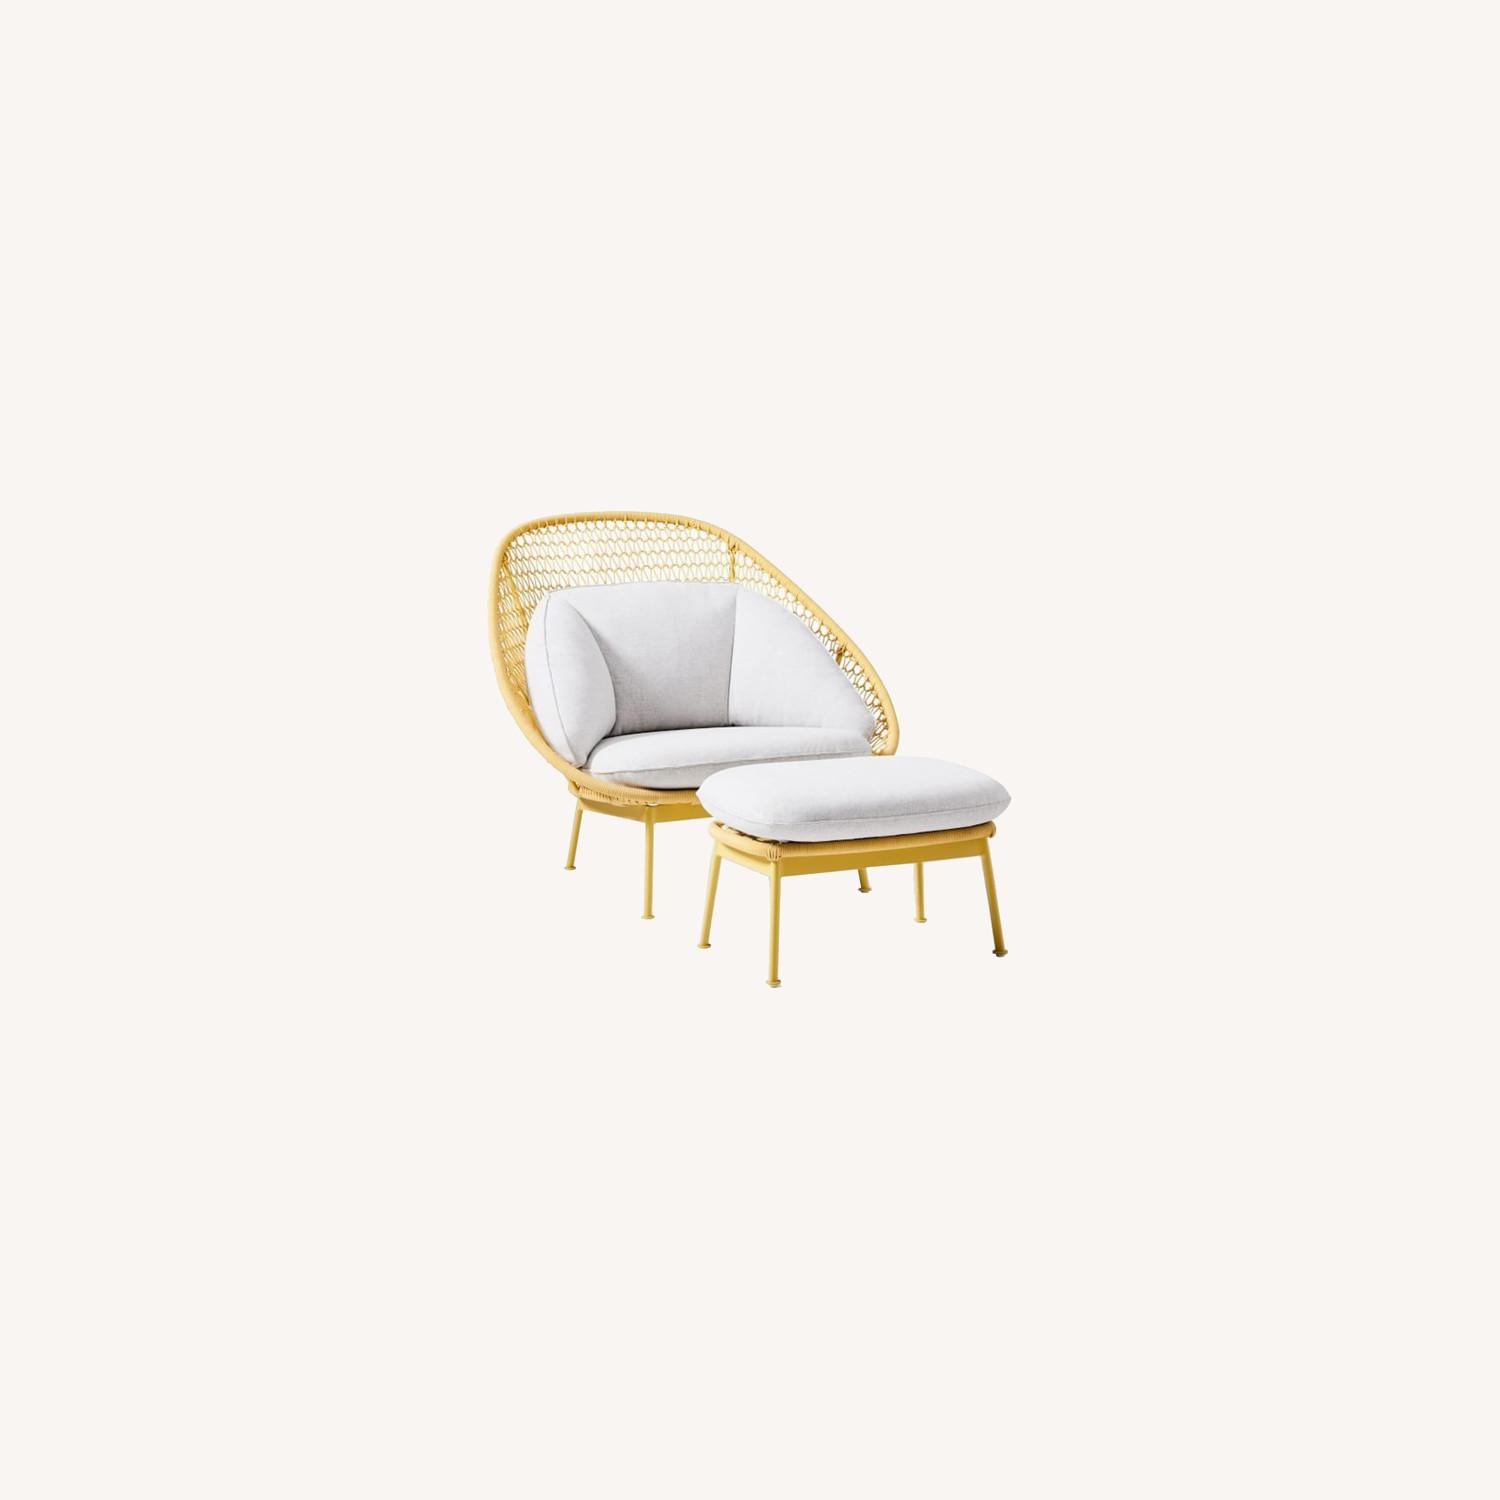 West Elm Nest Sunshine Lounge Chair + Ottoman - image-0